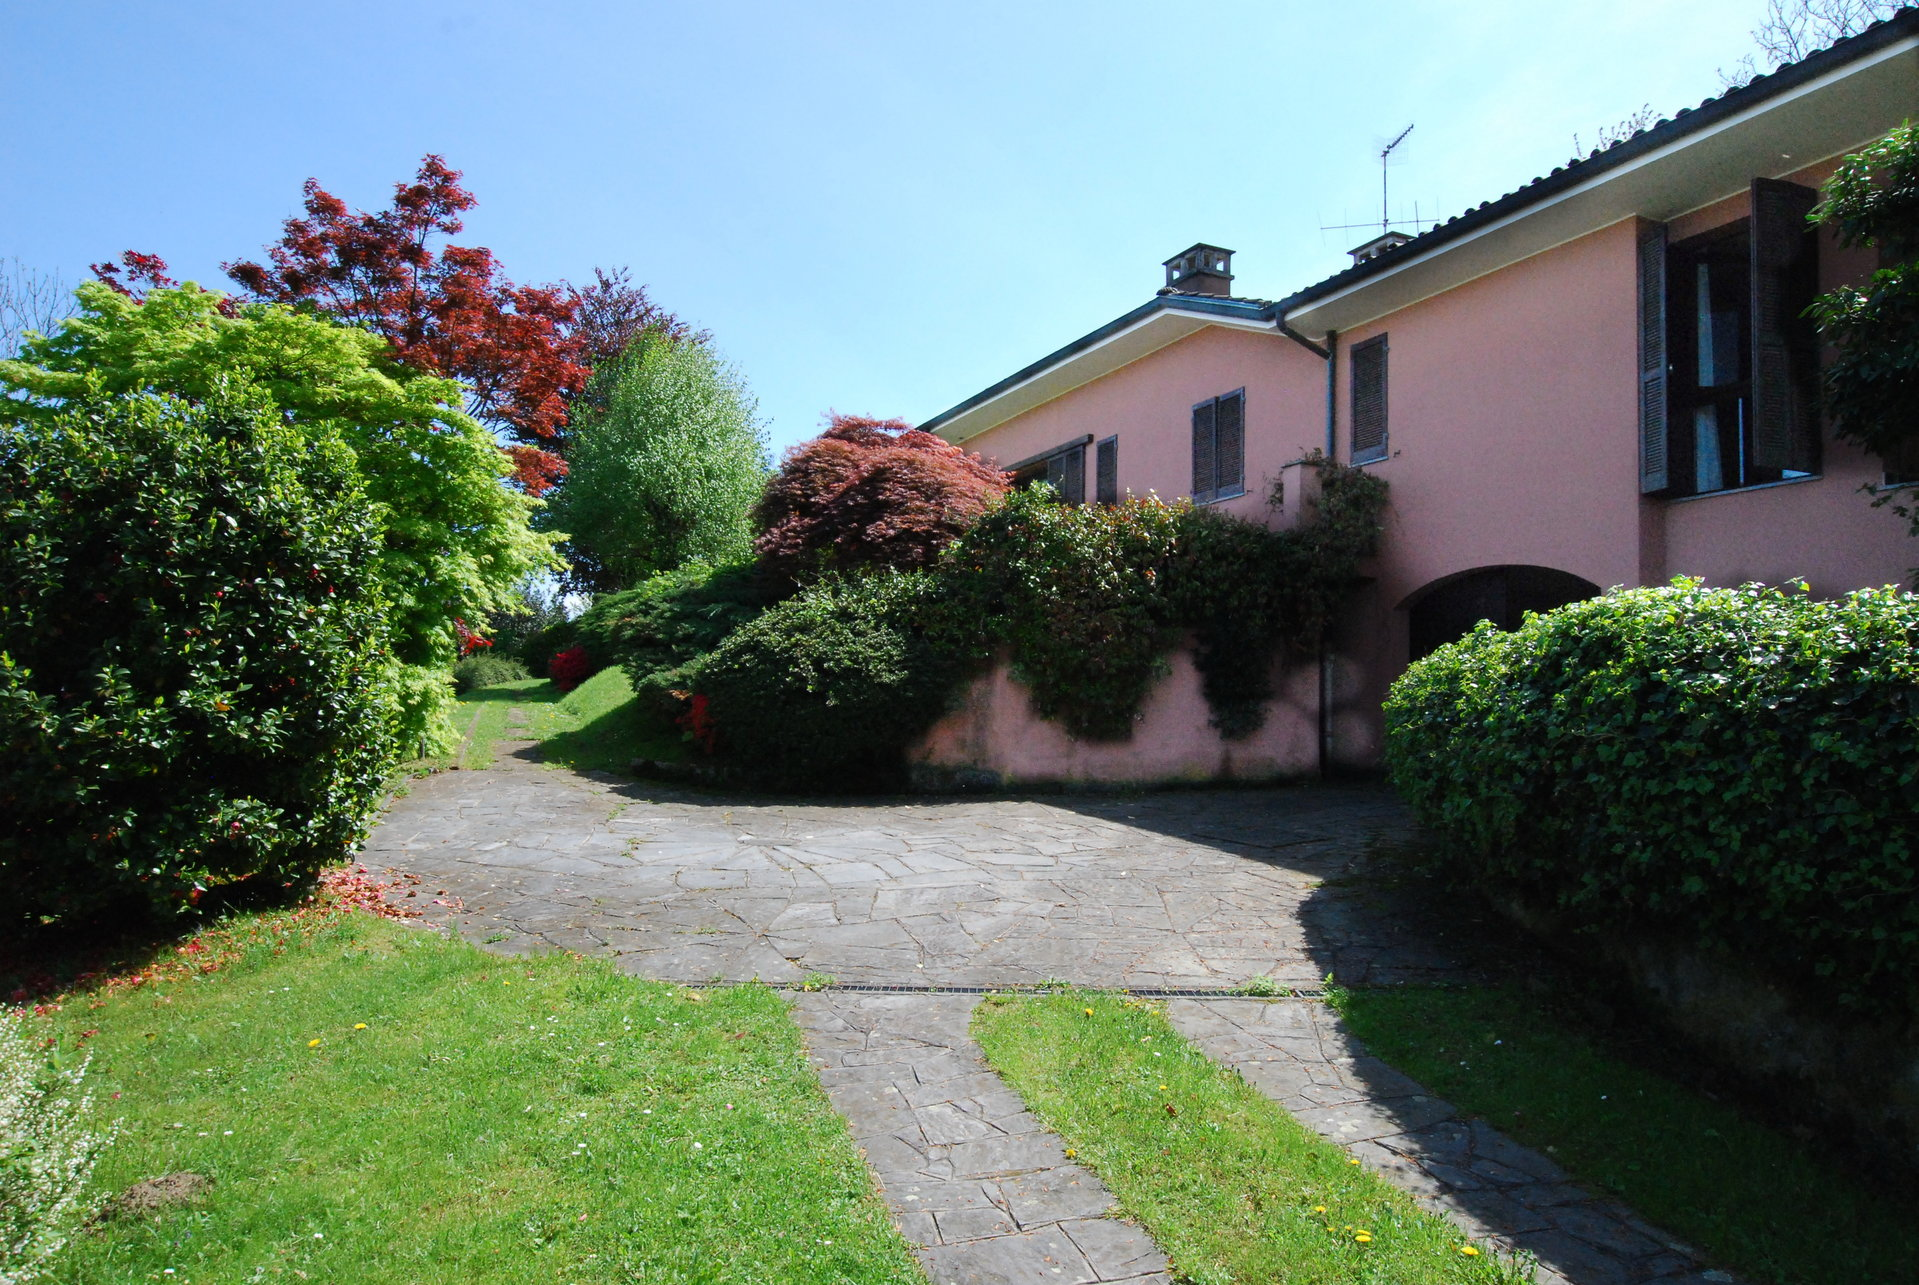 Lake view 80s villa in Stresa - driveway entrance